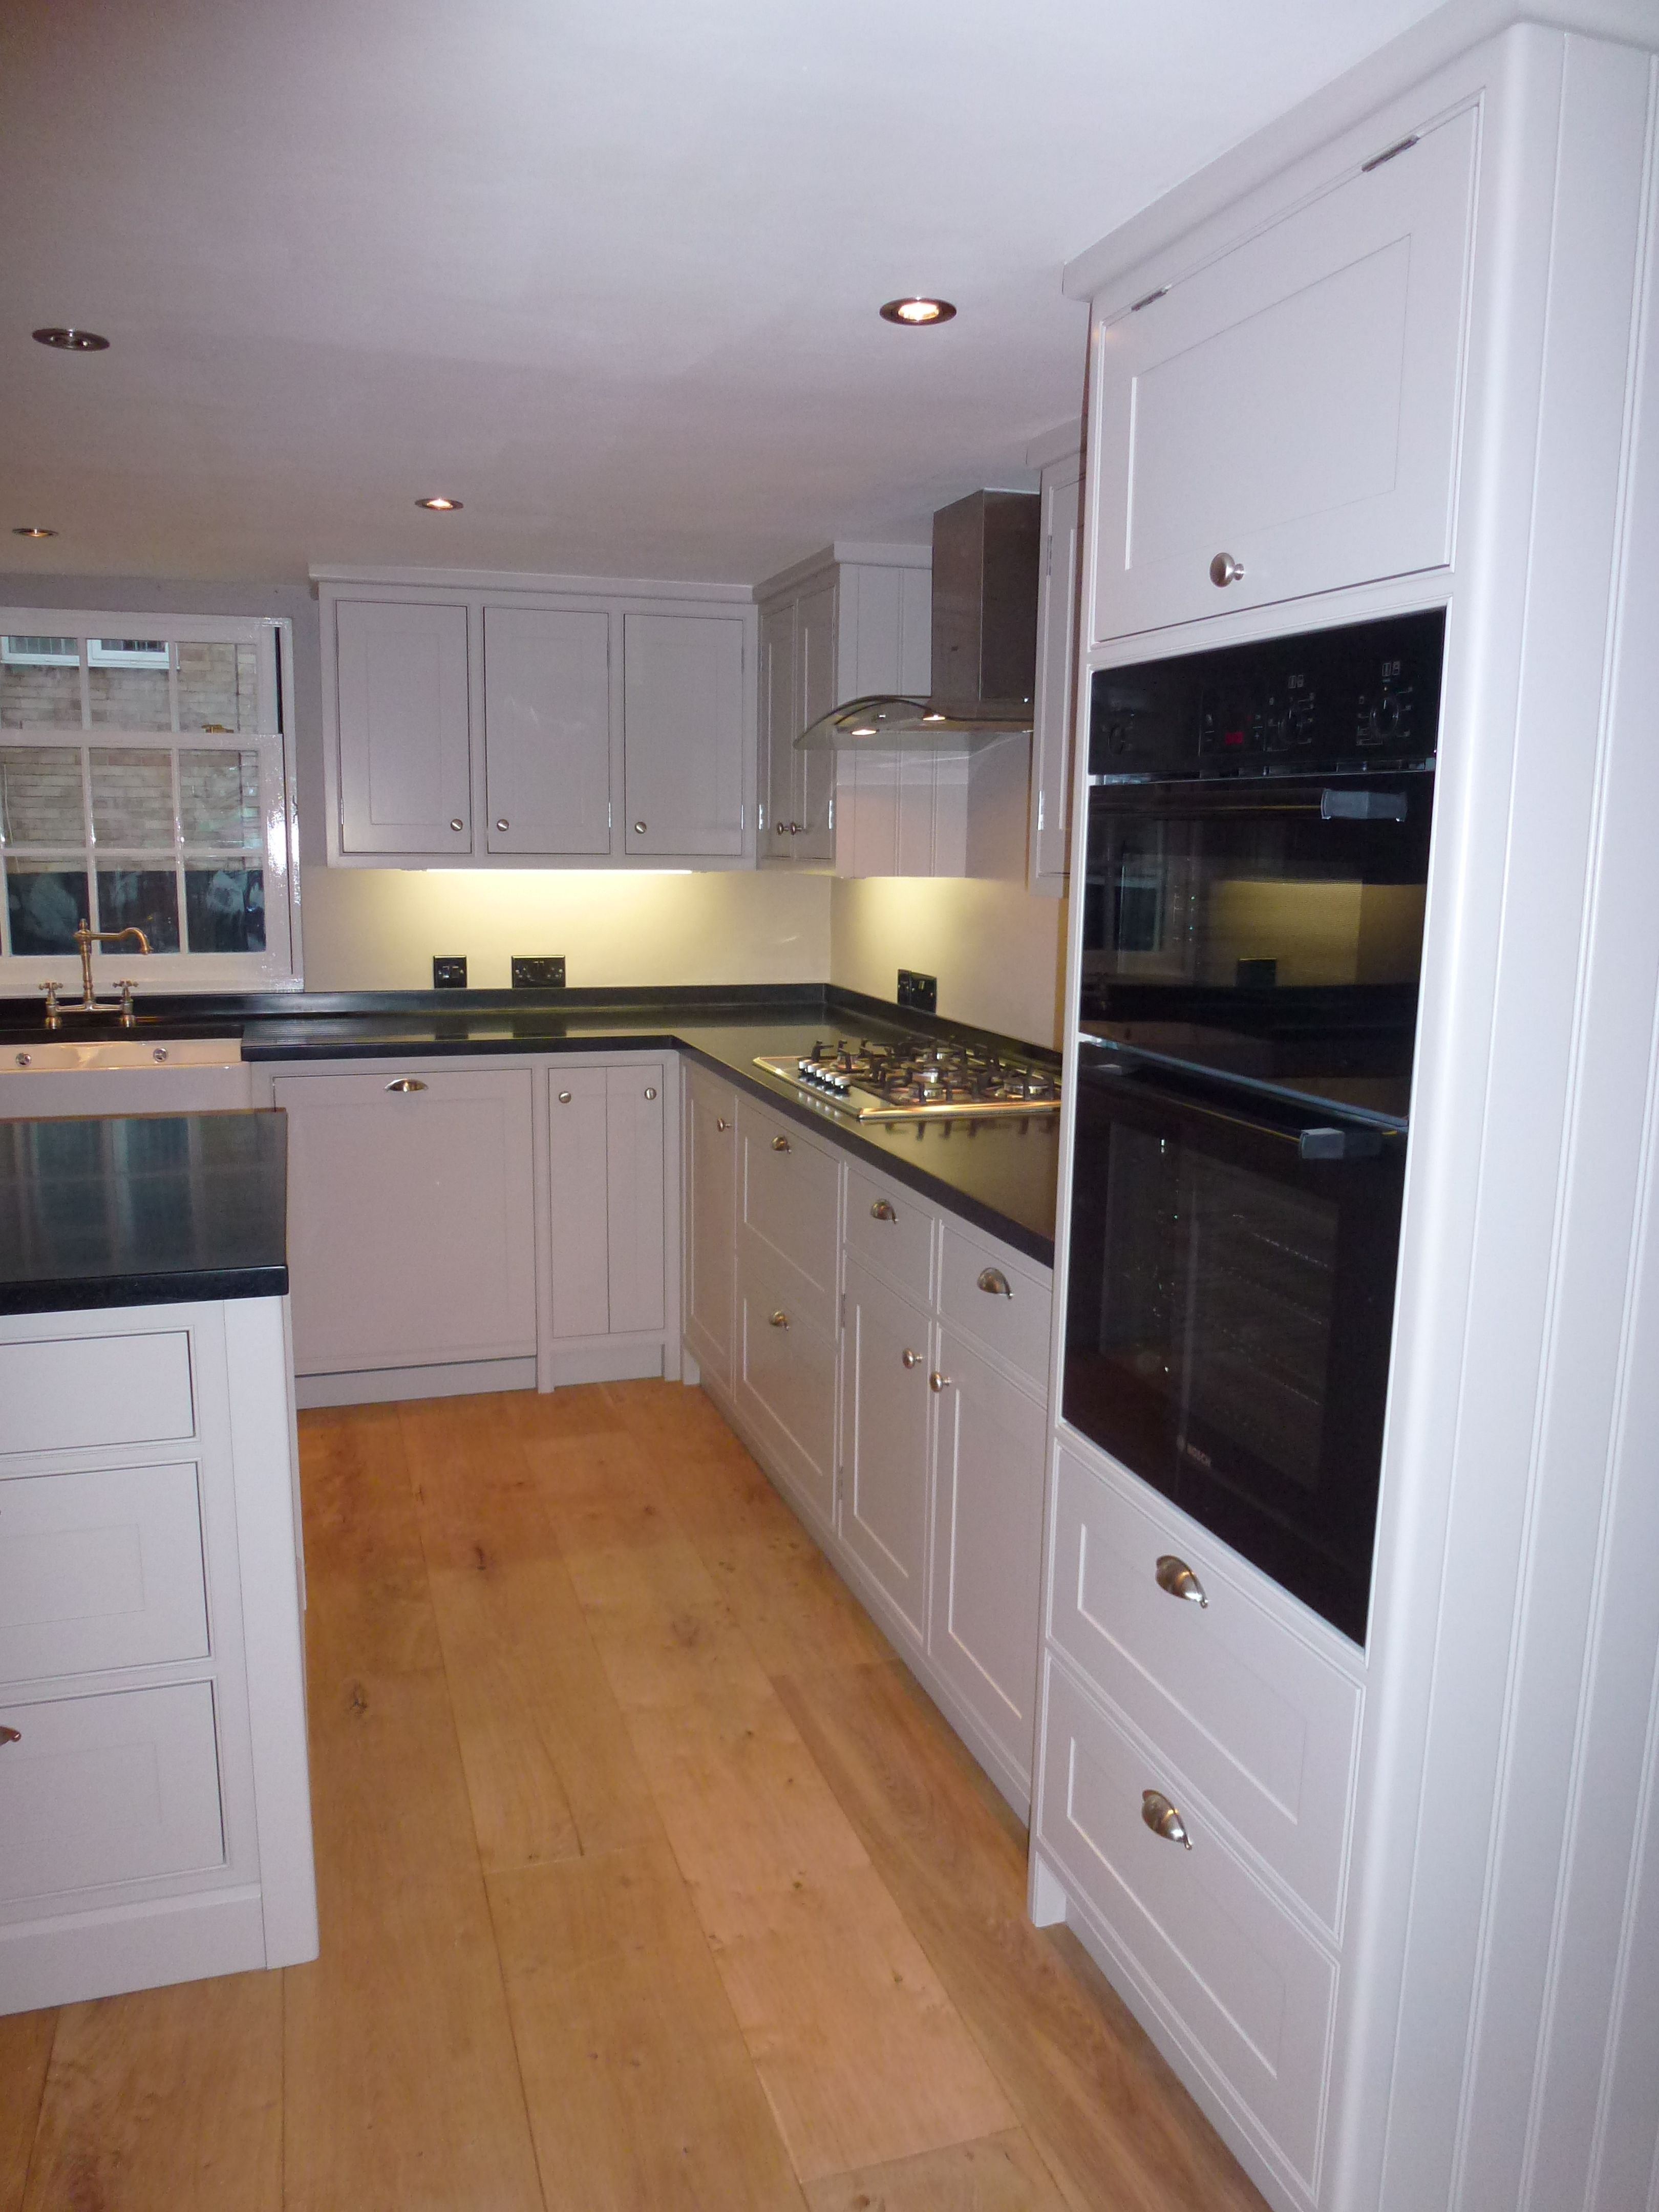 Best Handbuilt Kitchen Painted In F B Elephants Breath With 640 x 480